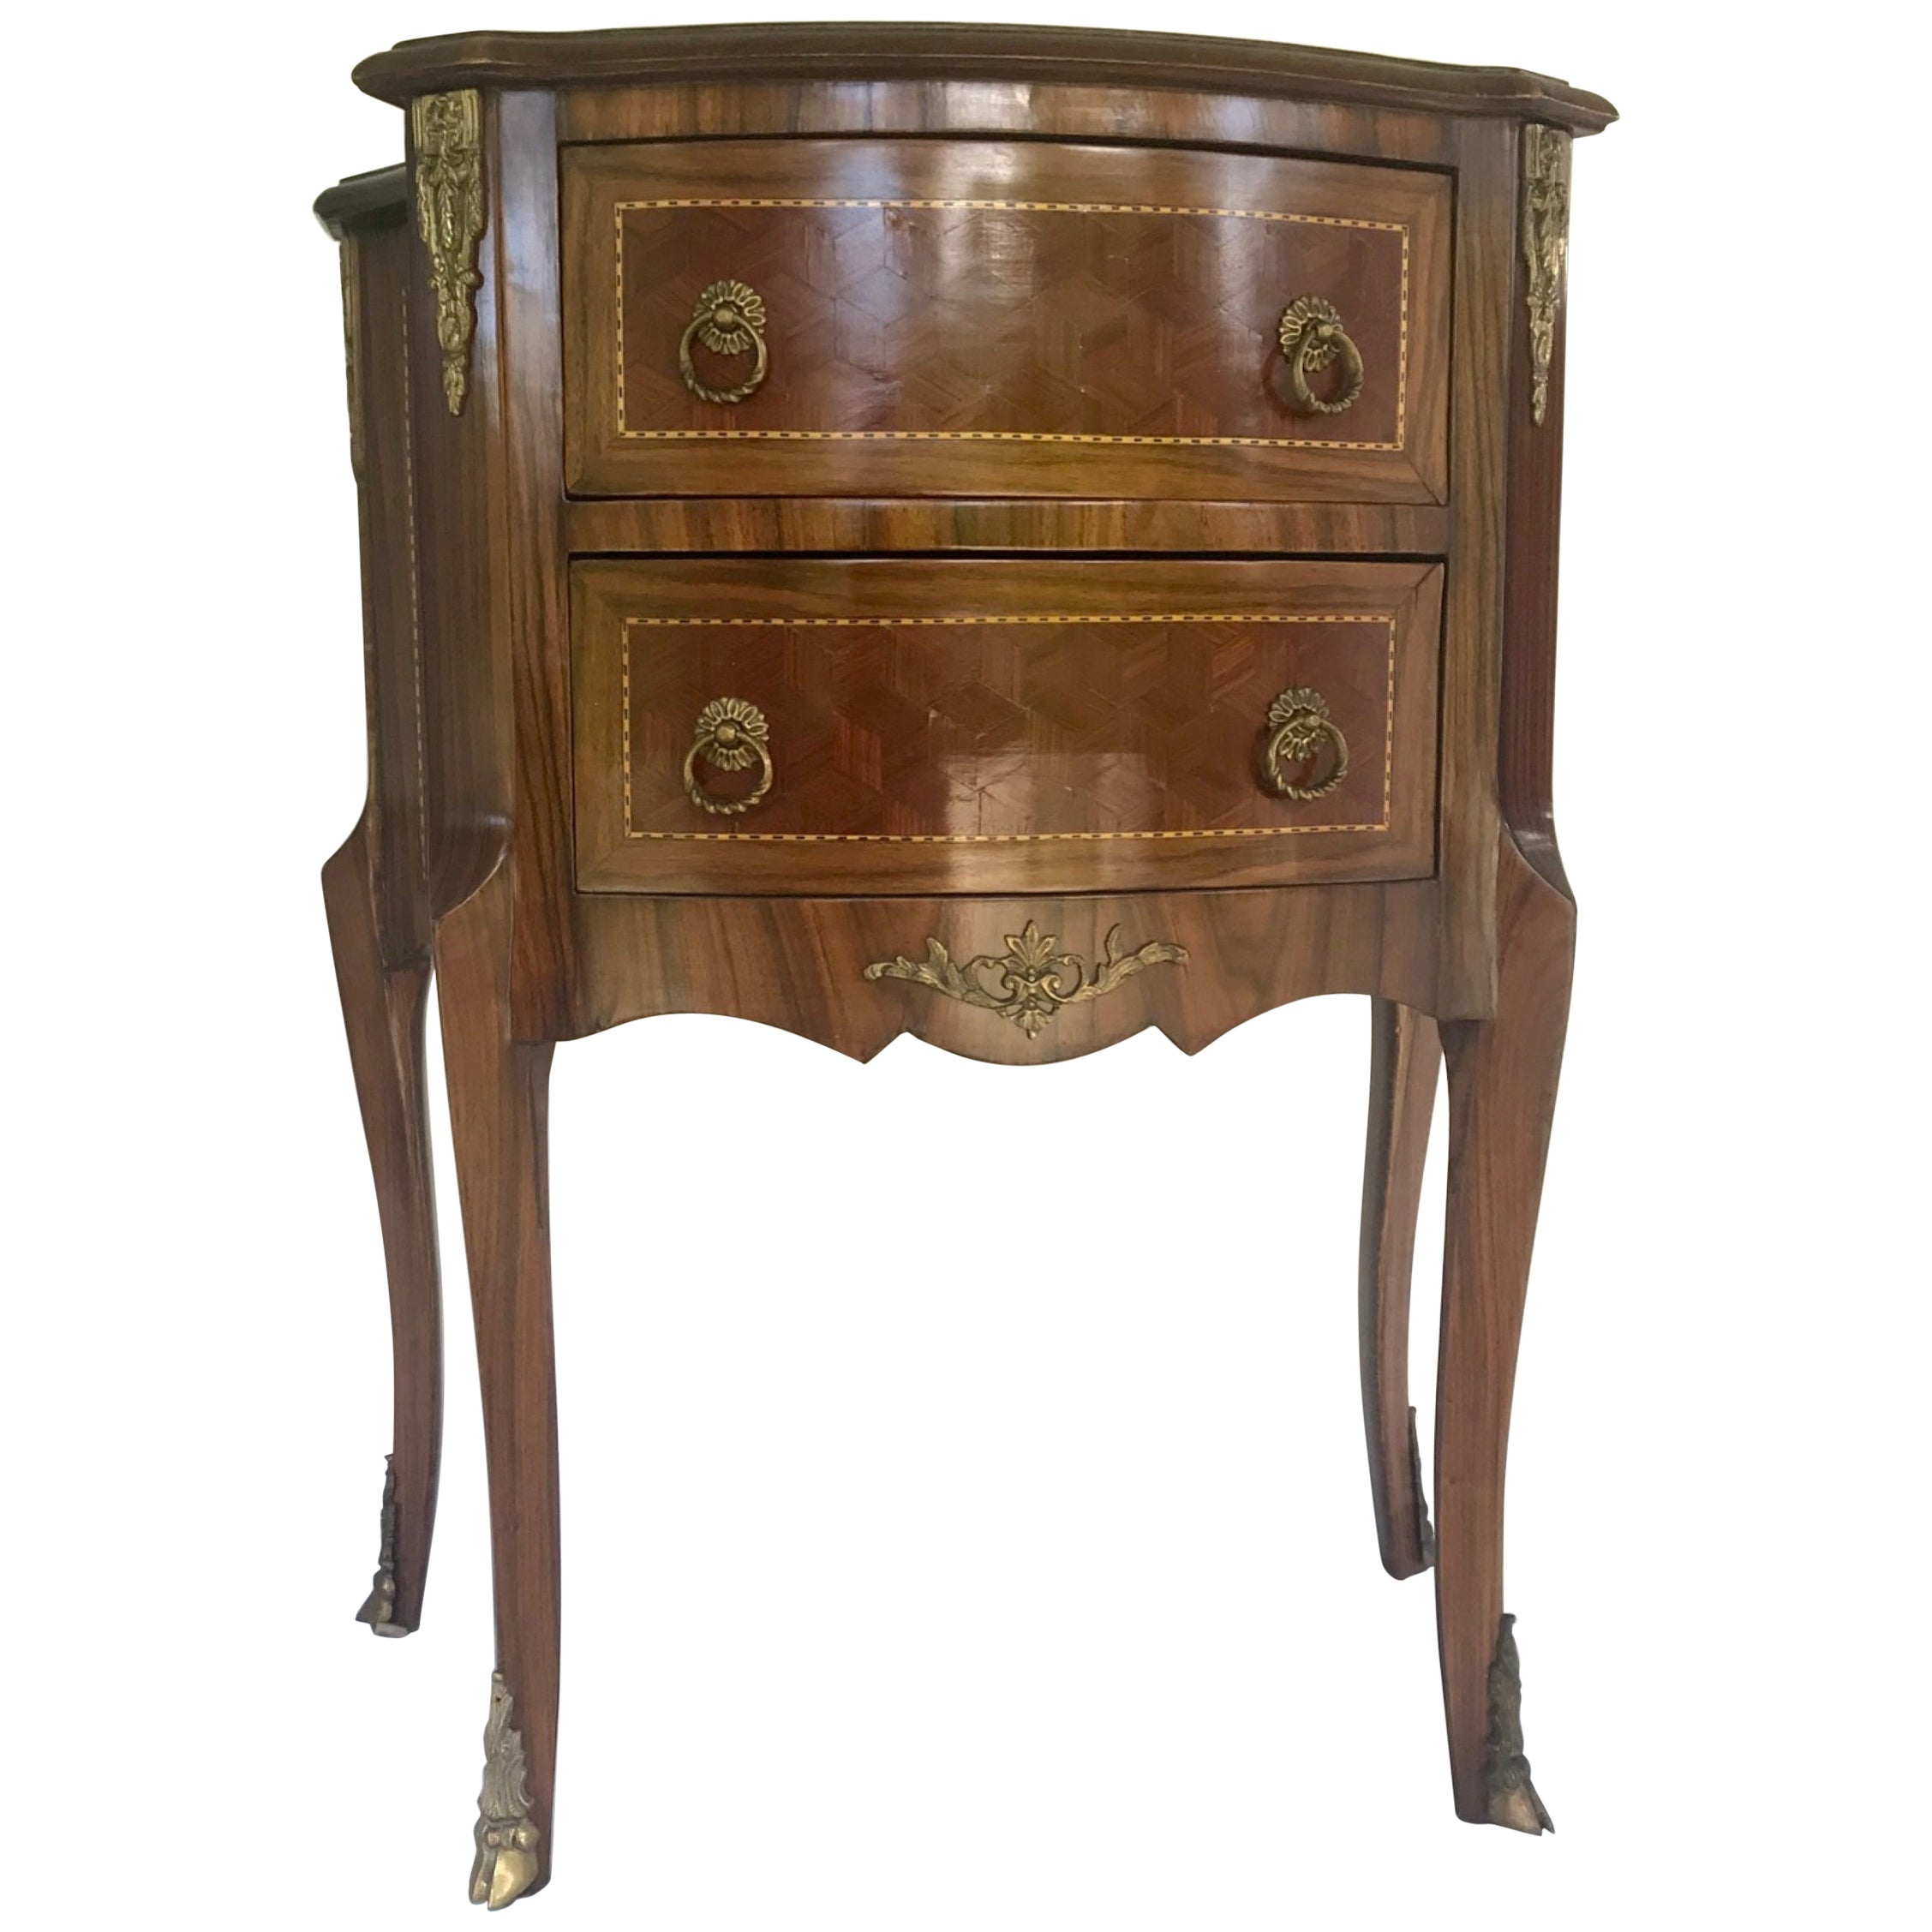 Late 19th Century Louis XVI Style Kingwood Marquetry 2-Drawer Commode